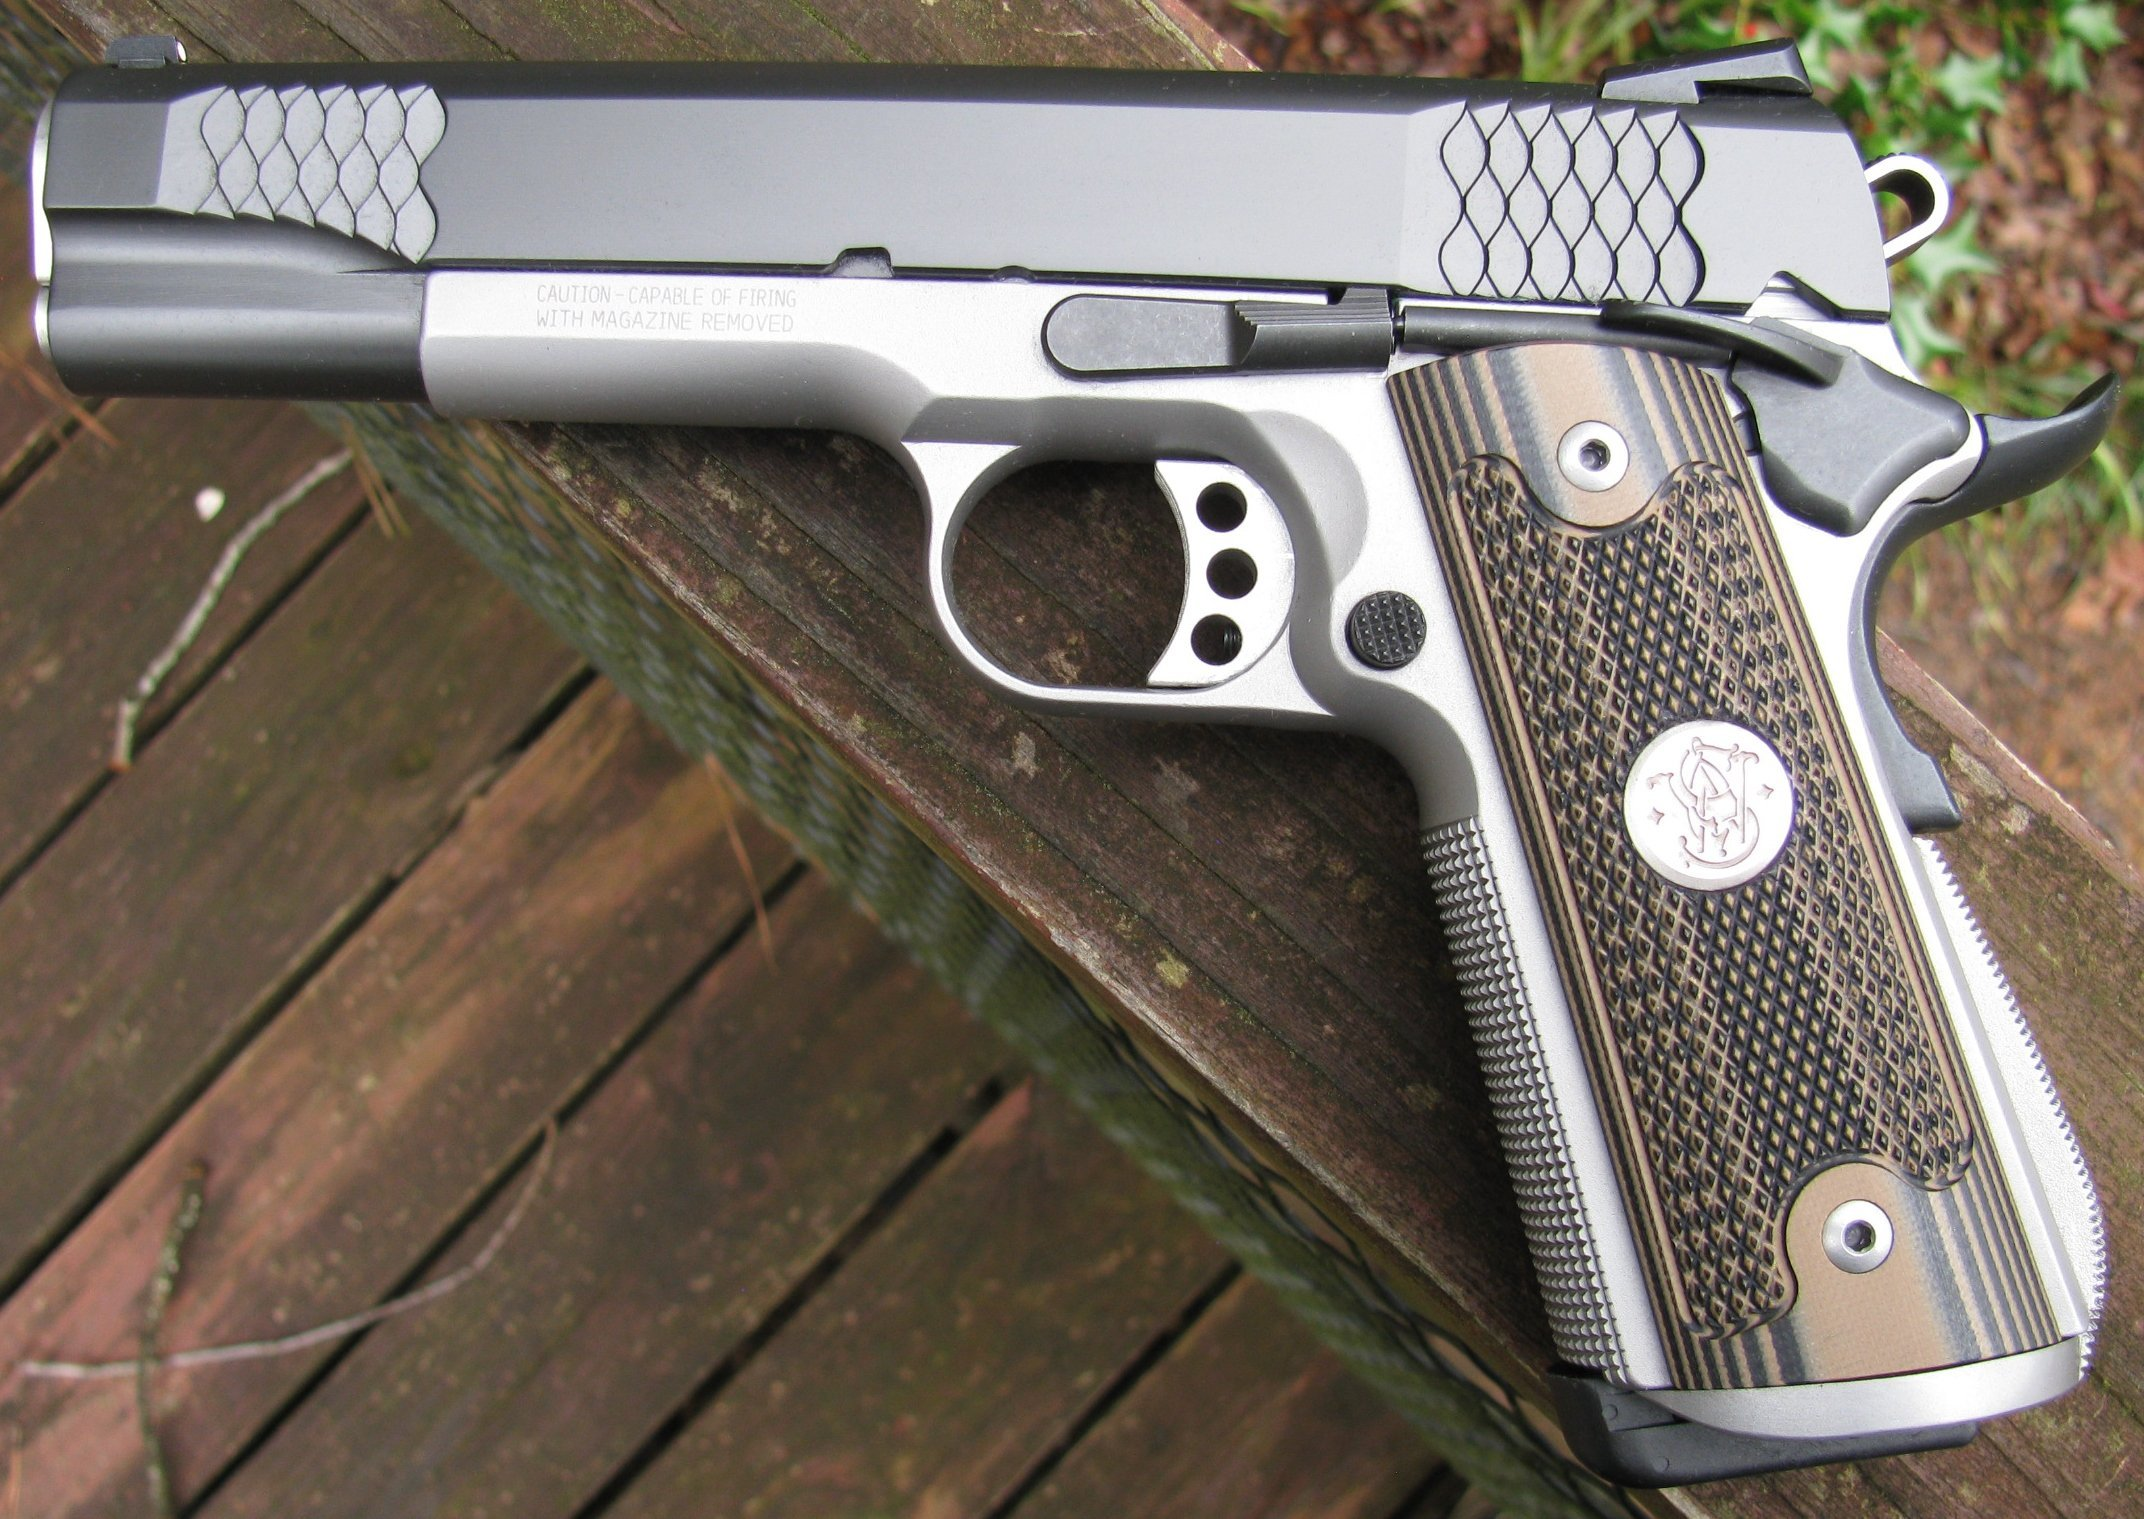 Click image for larger version  Name:S&W 007.JPG Views:46 Size:1.52 MB ID:512594